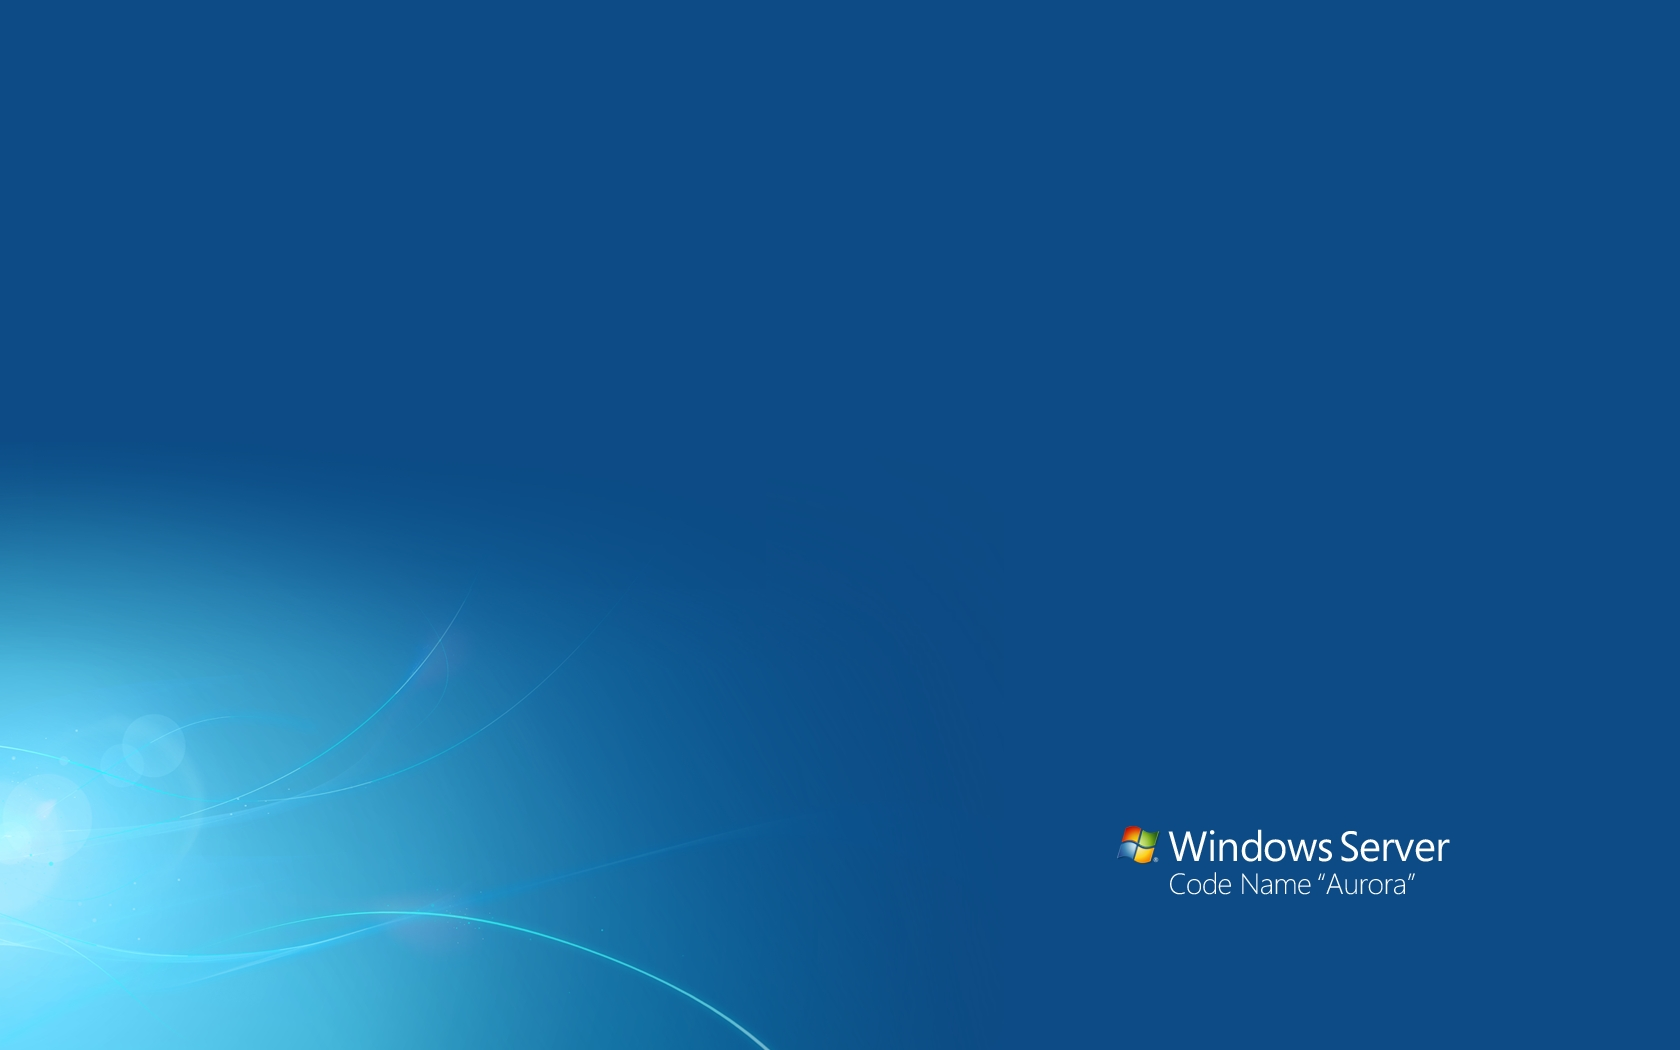 windows server wallpapers group (67+)